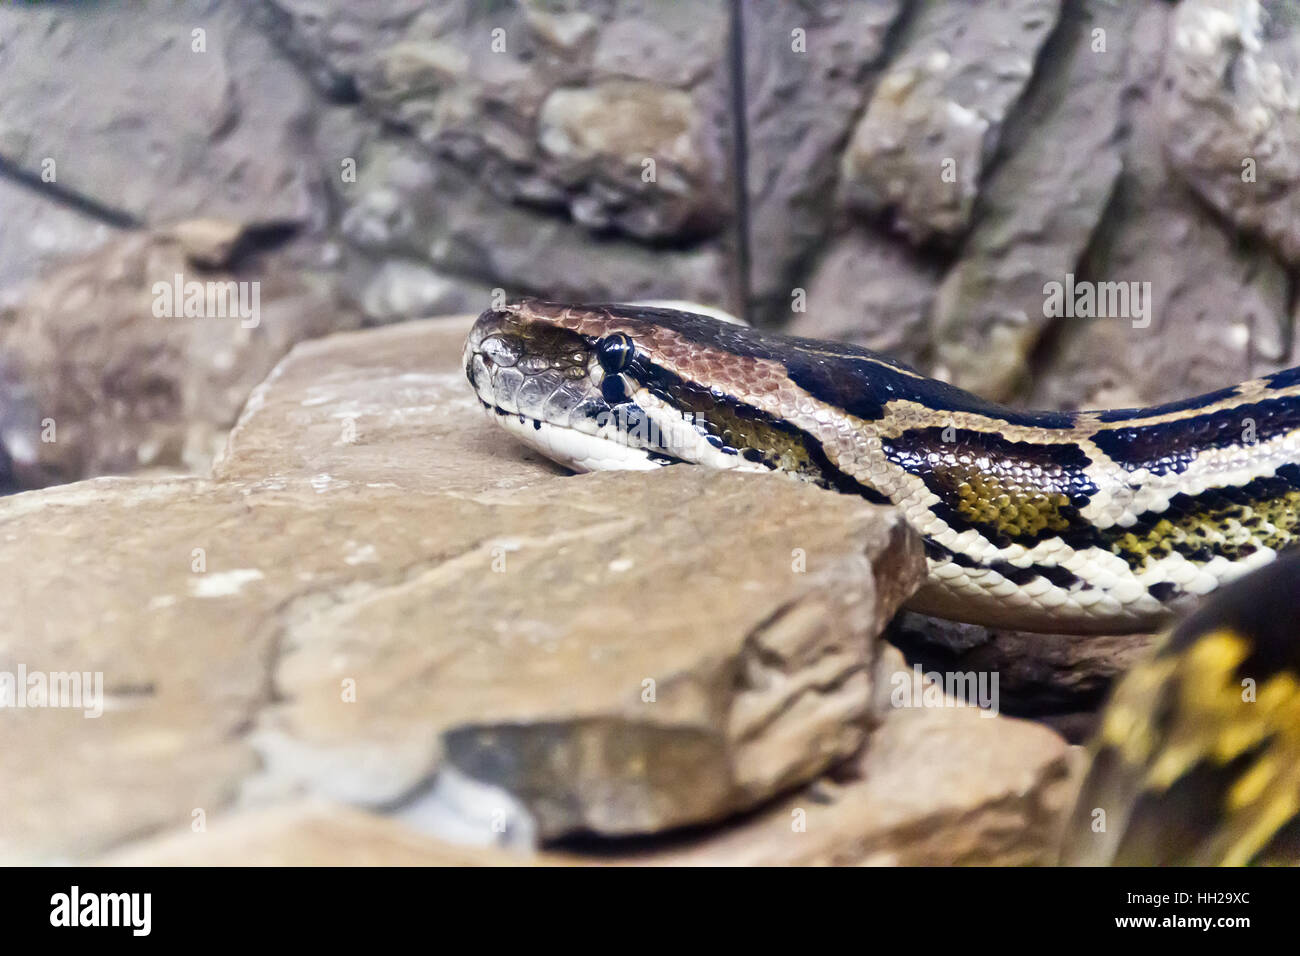 Photo of python head in the midst of stones - Stock Image